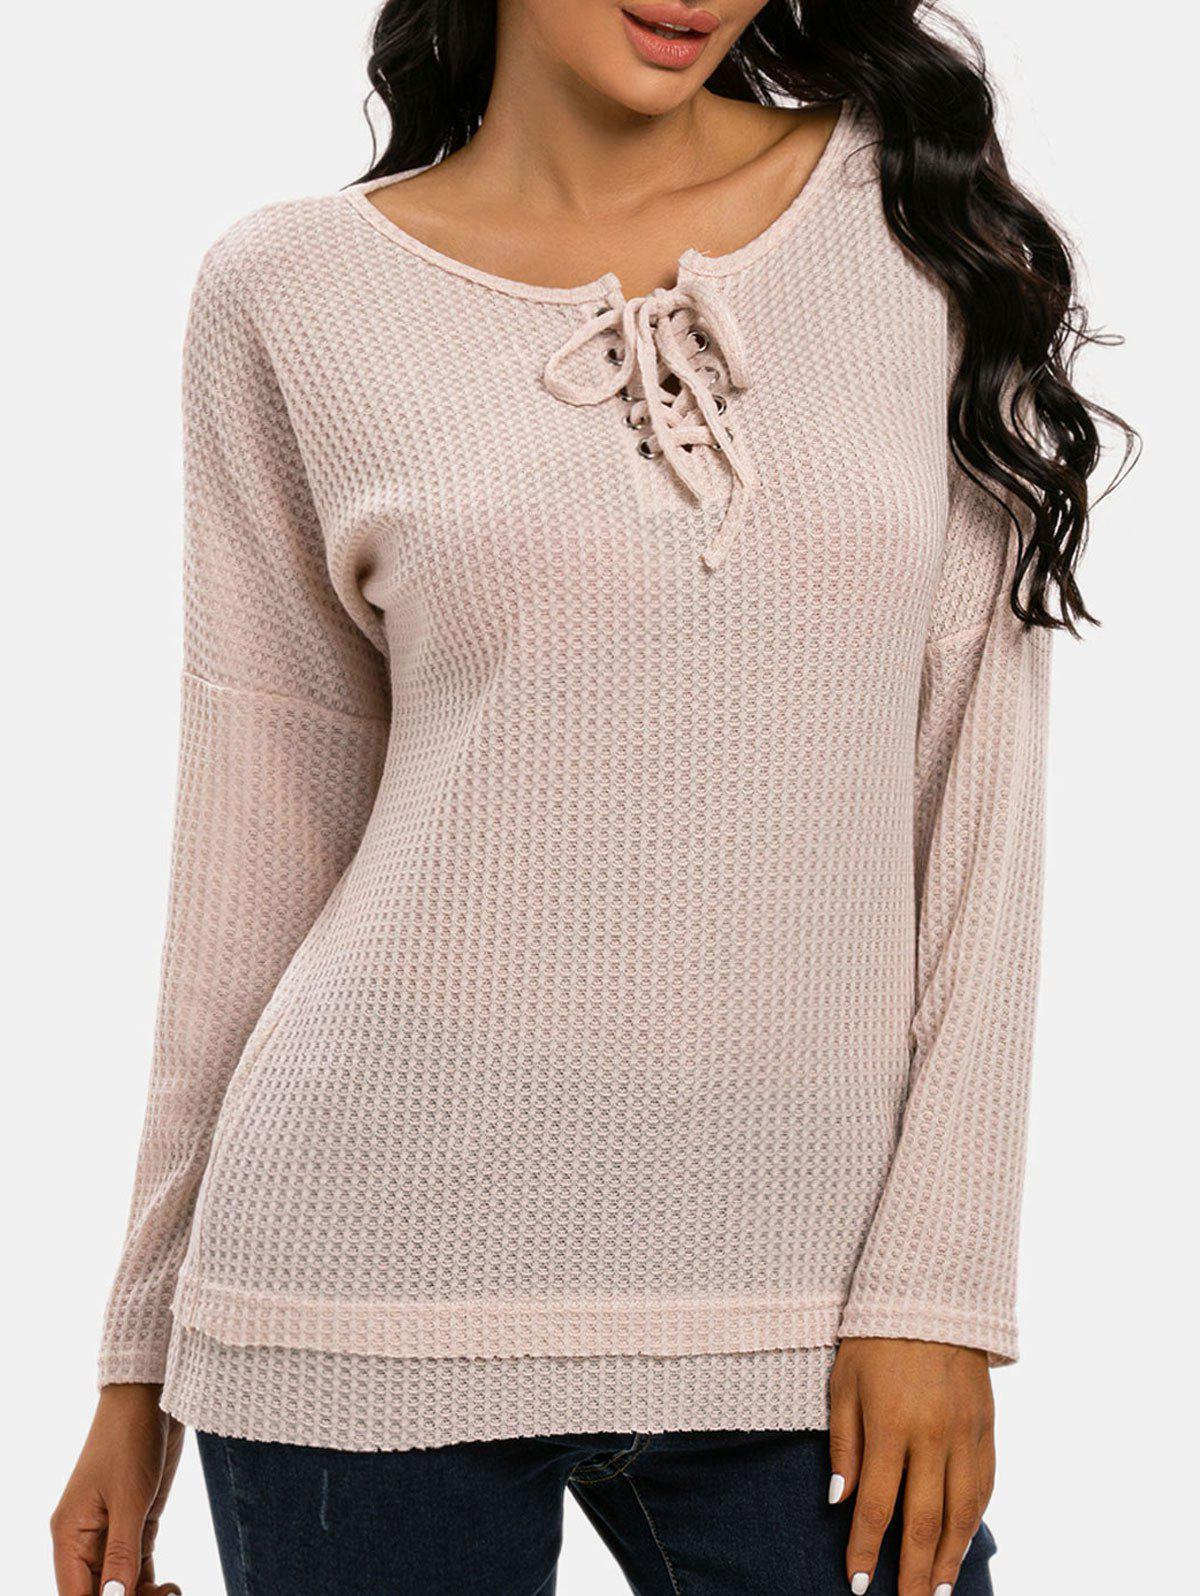 Lace-up Raw Hem Honeycomb Knitwear - LIGHT COFFEE XXL